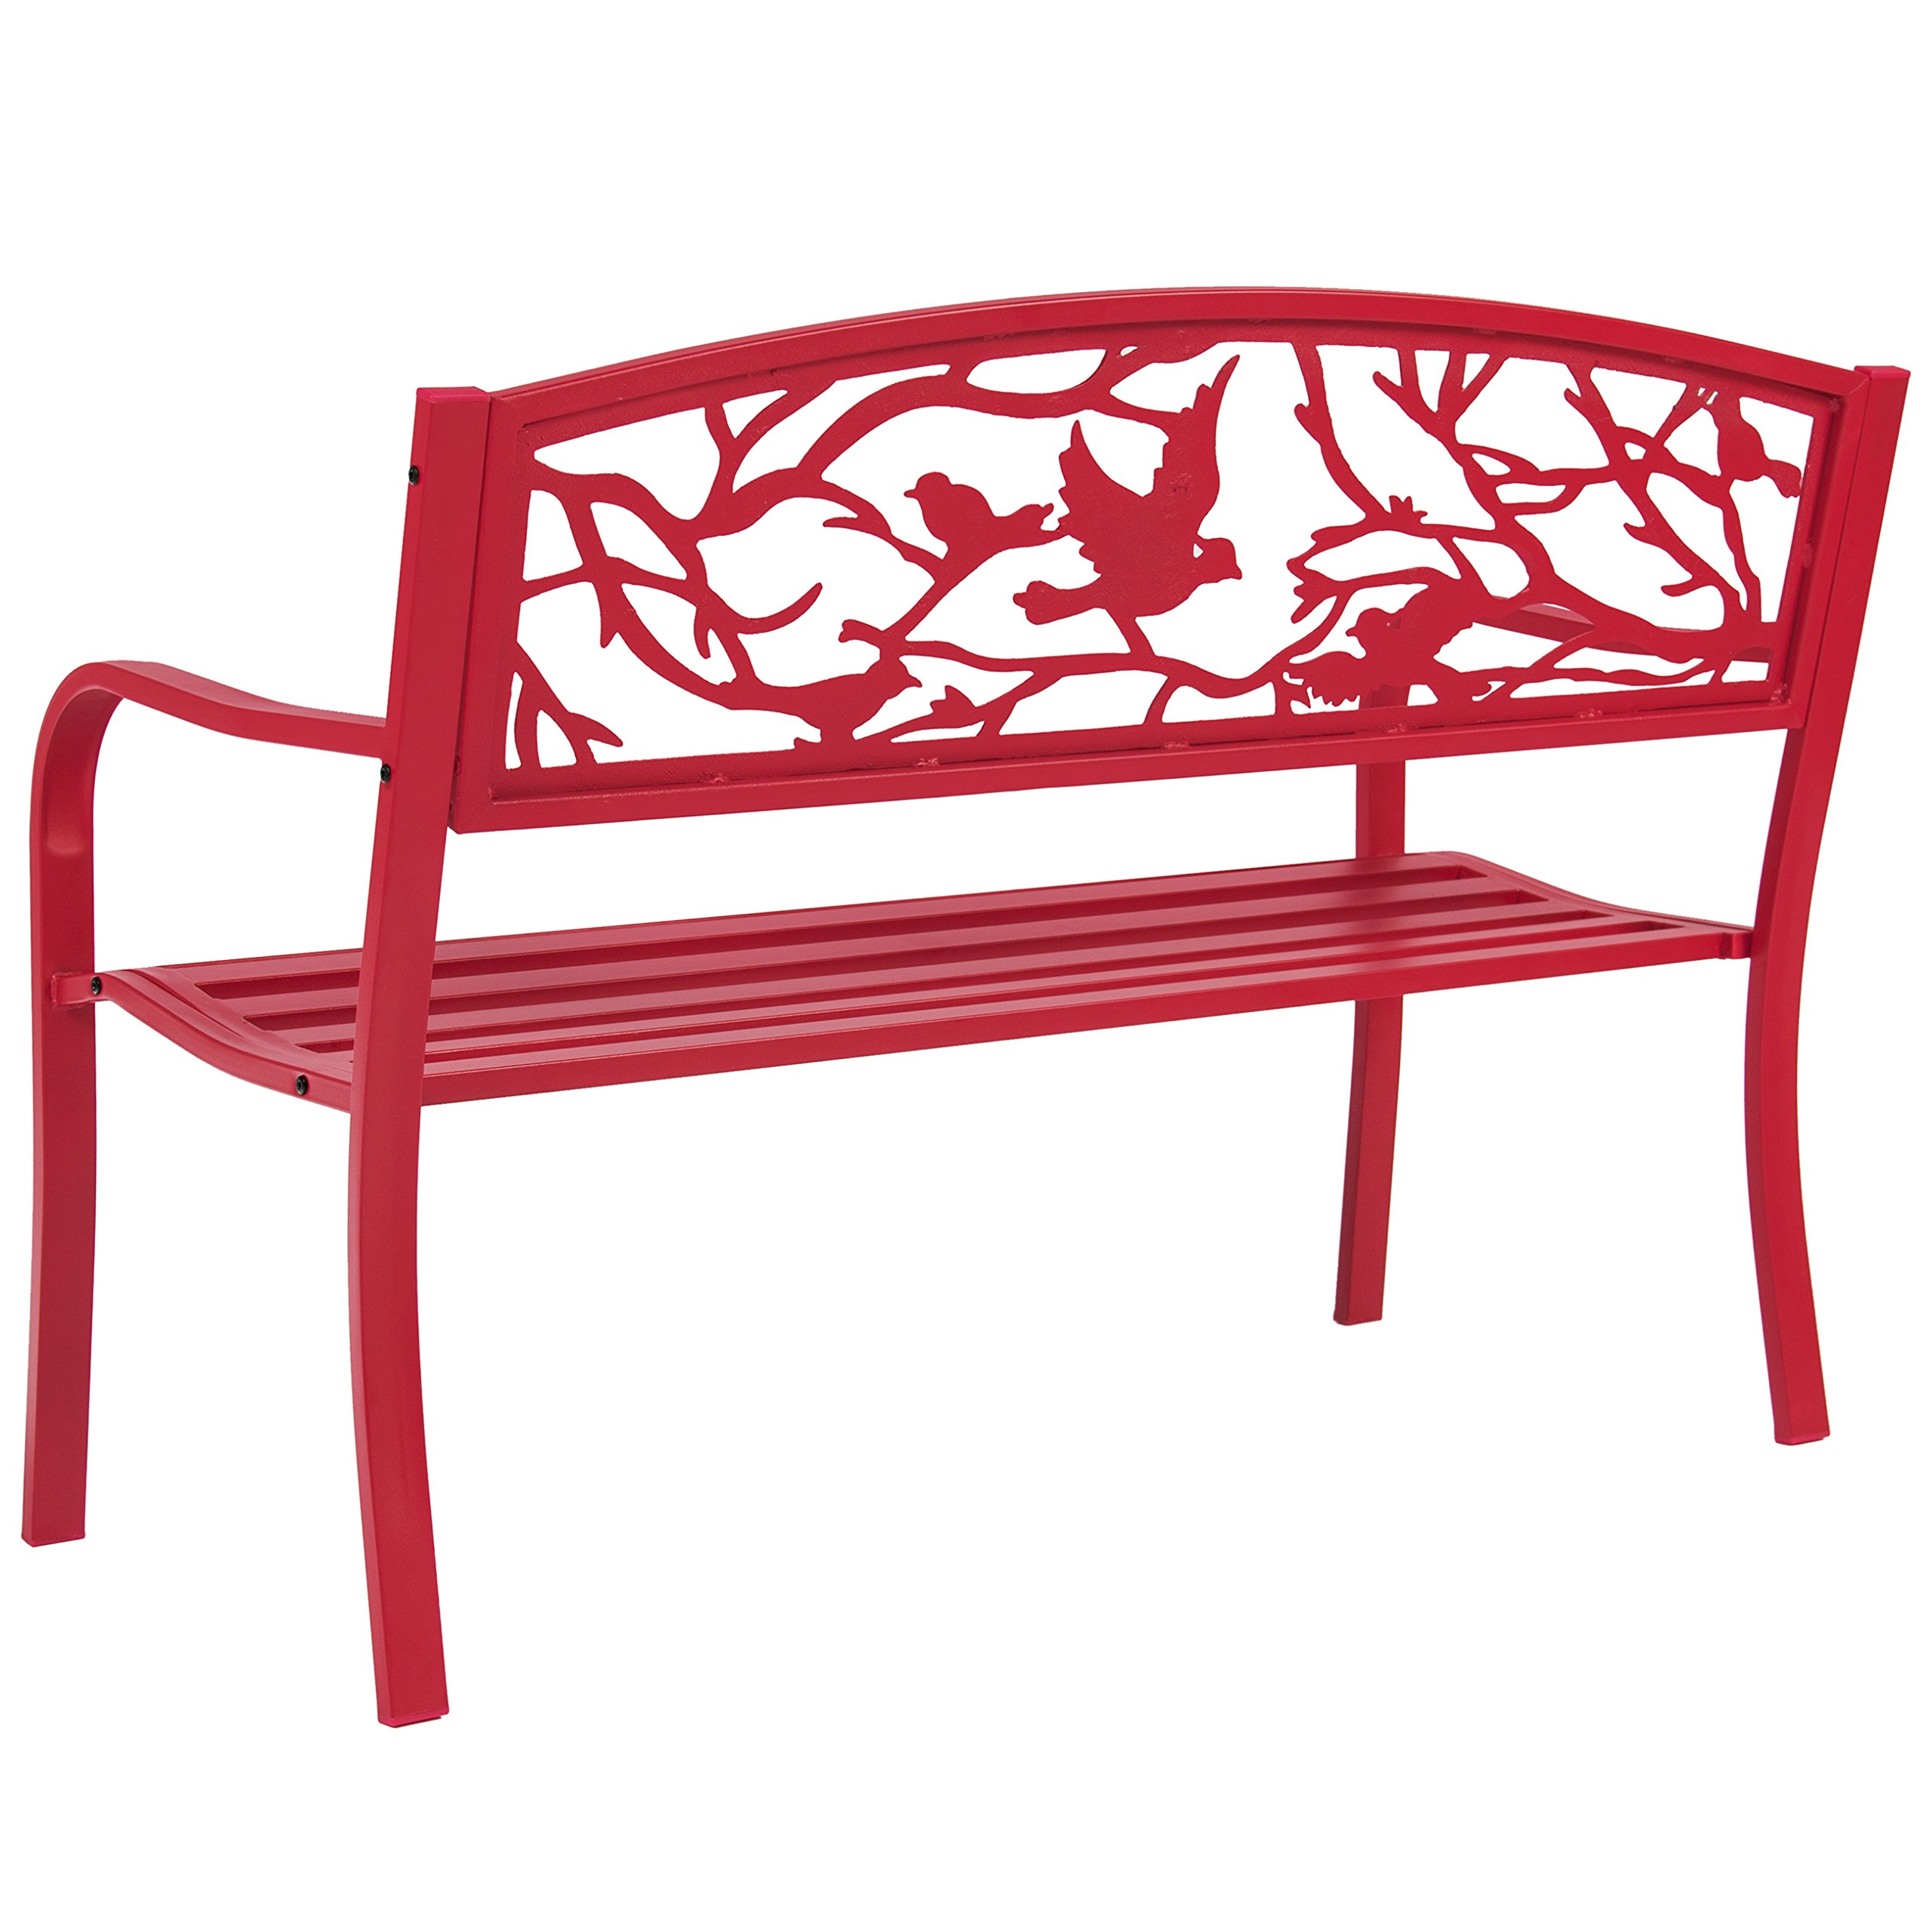 Best Choice Products Steel Park Bench Porch Furniture for Outdoor, Garden, Patio - Red by Best Choice Products (Image #3)